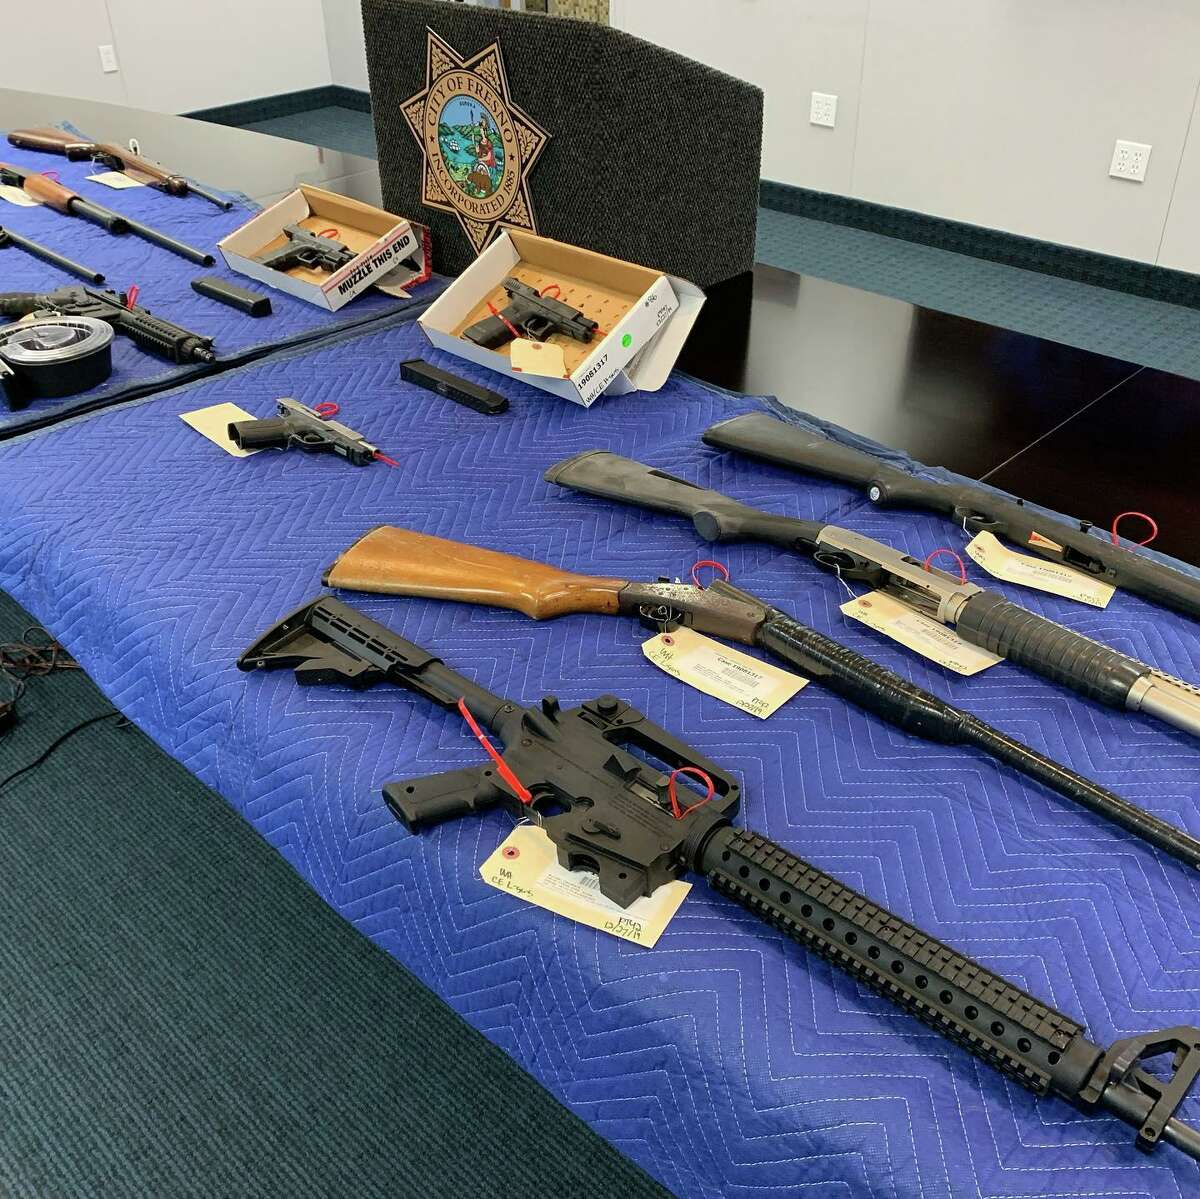 Fresno police displayed a cache of rifles and handguns confiscated while six people in connection with a Nov. 17, 2019 mass shooting on the patio of a Fresno home which left four people dead and 10 more wounded as they watched a football game.